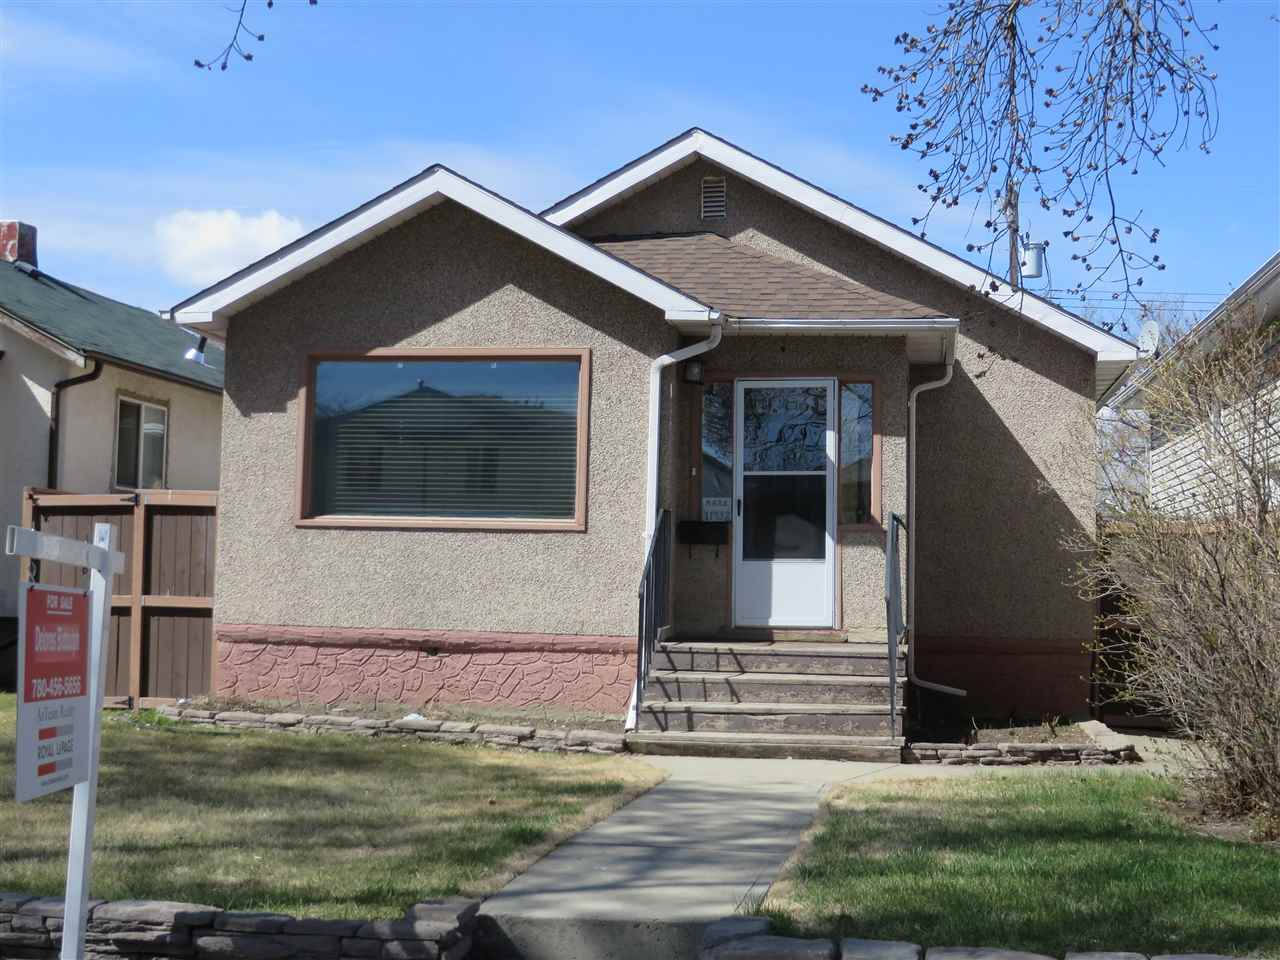 COZY 2 BEDROOM BUNGALOW CLOSE TO ALL AMENITIES AND PRICED TO SELL. NEWER FLOOR COVERING, NEWER FURNACE, EXTRA DEN AND 3 PCE BATH DOWN, NEWER GARAGE WITH DOOR OPENER